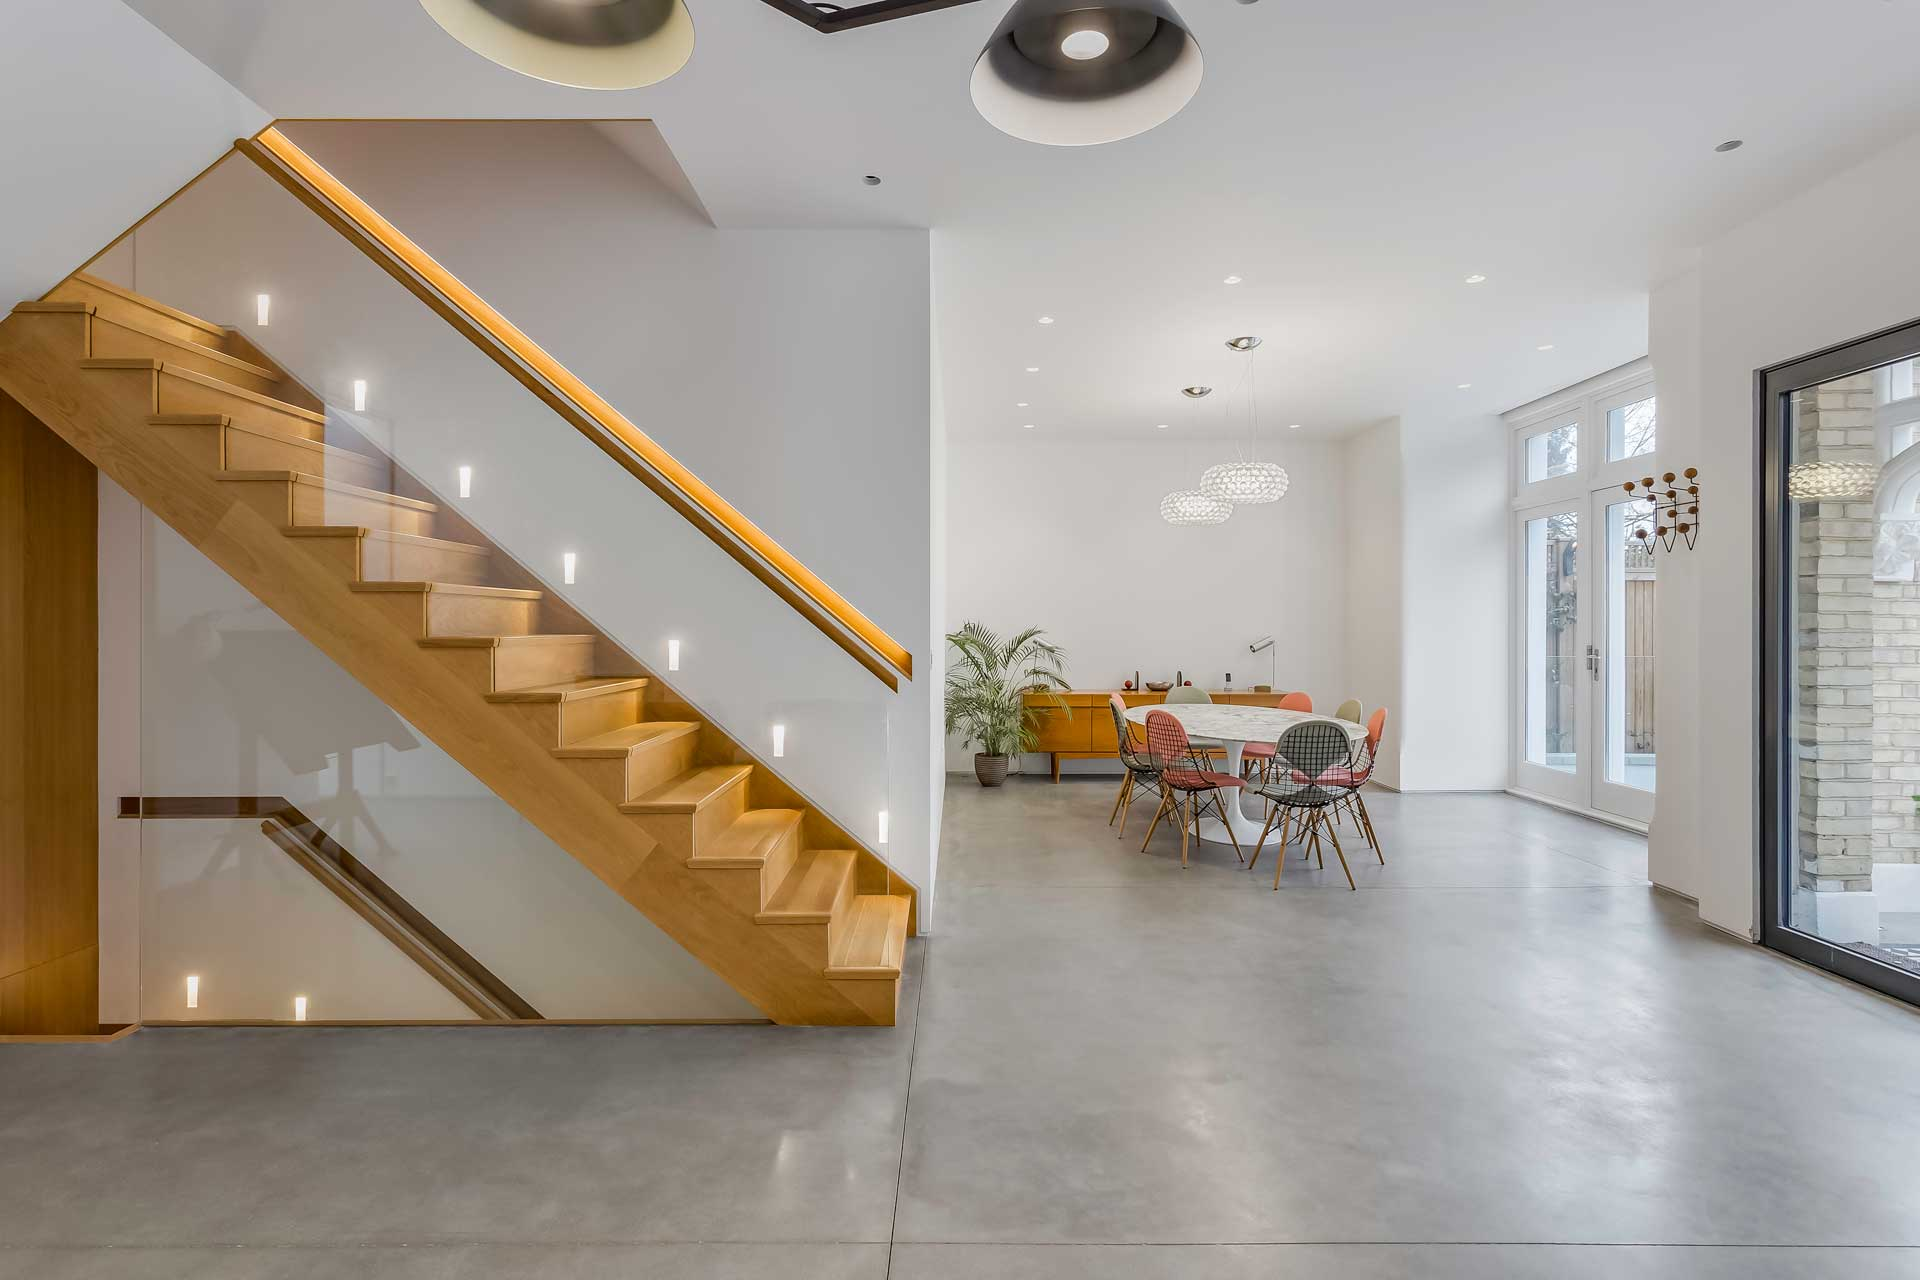 Helix Gardens Brixton Full Renovation And Extension With New Basement 11